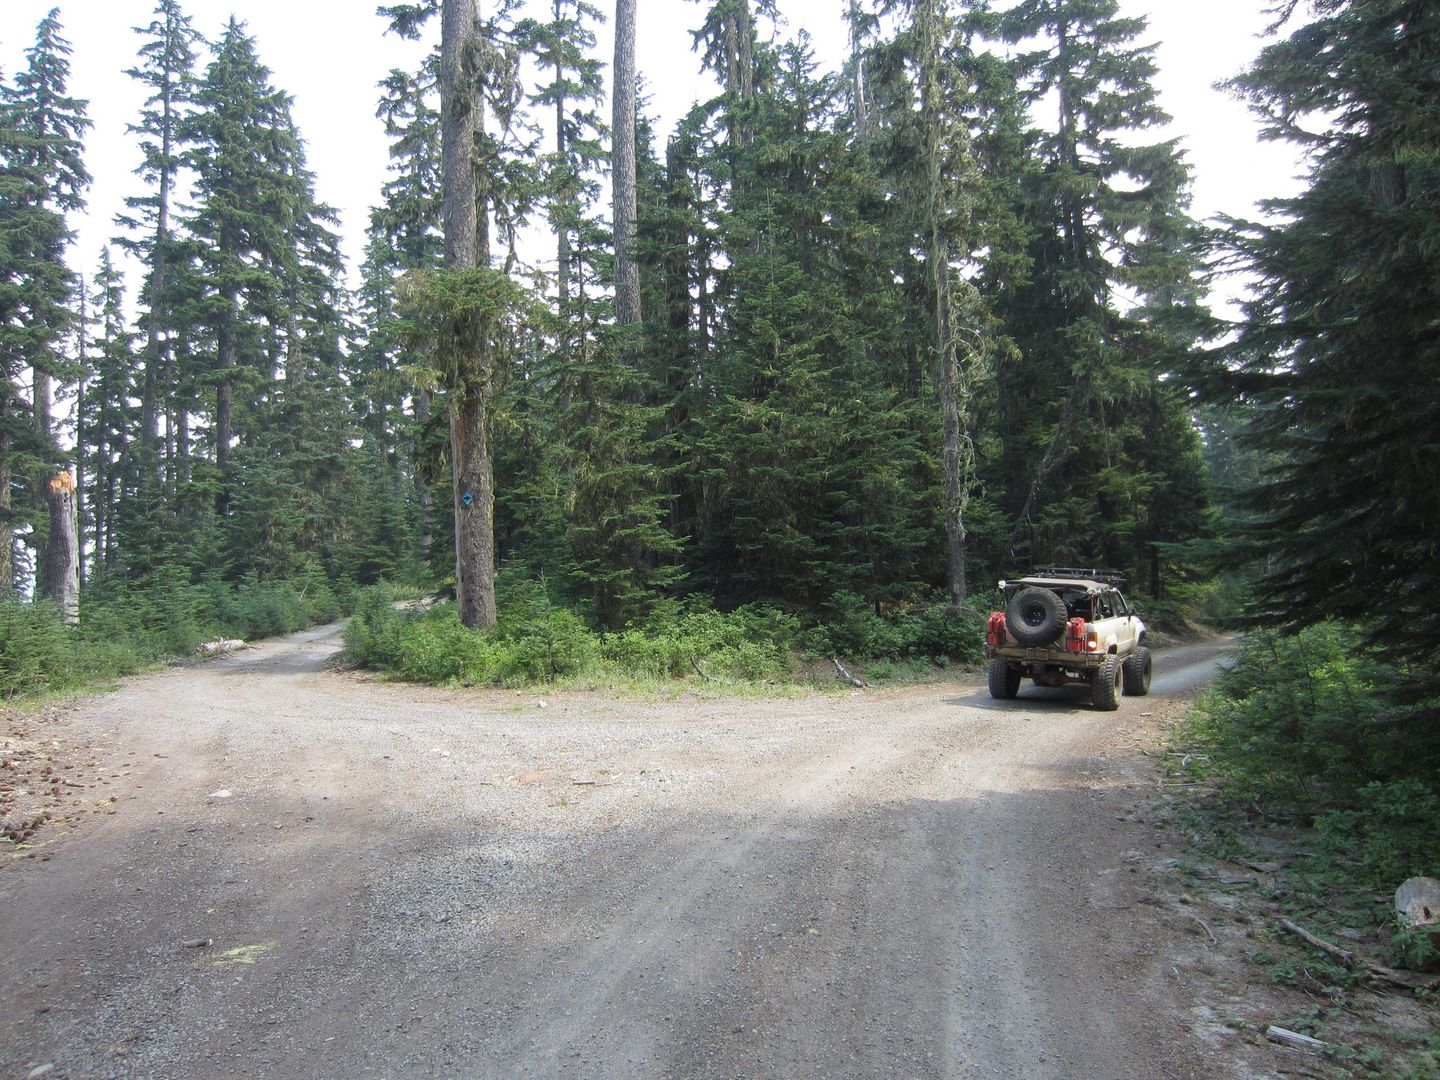 Bennett Pass Road - Waypoint 4: Take Southeast (Right) Trail at 3550-630